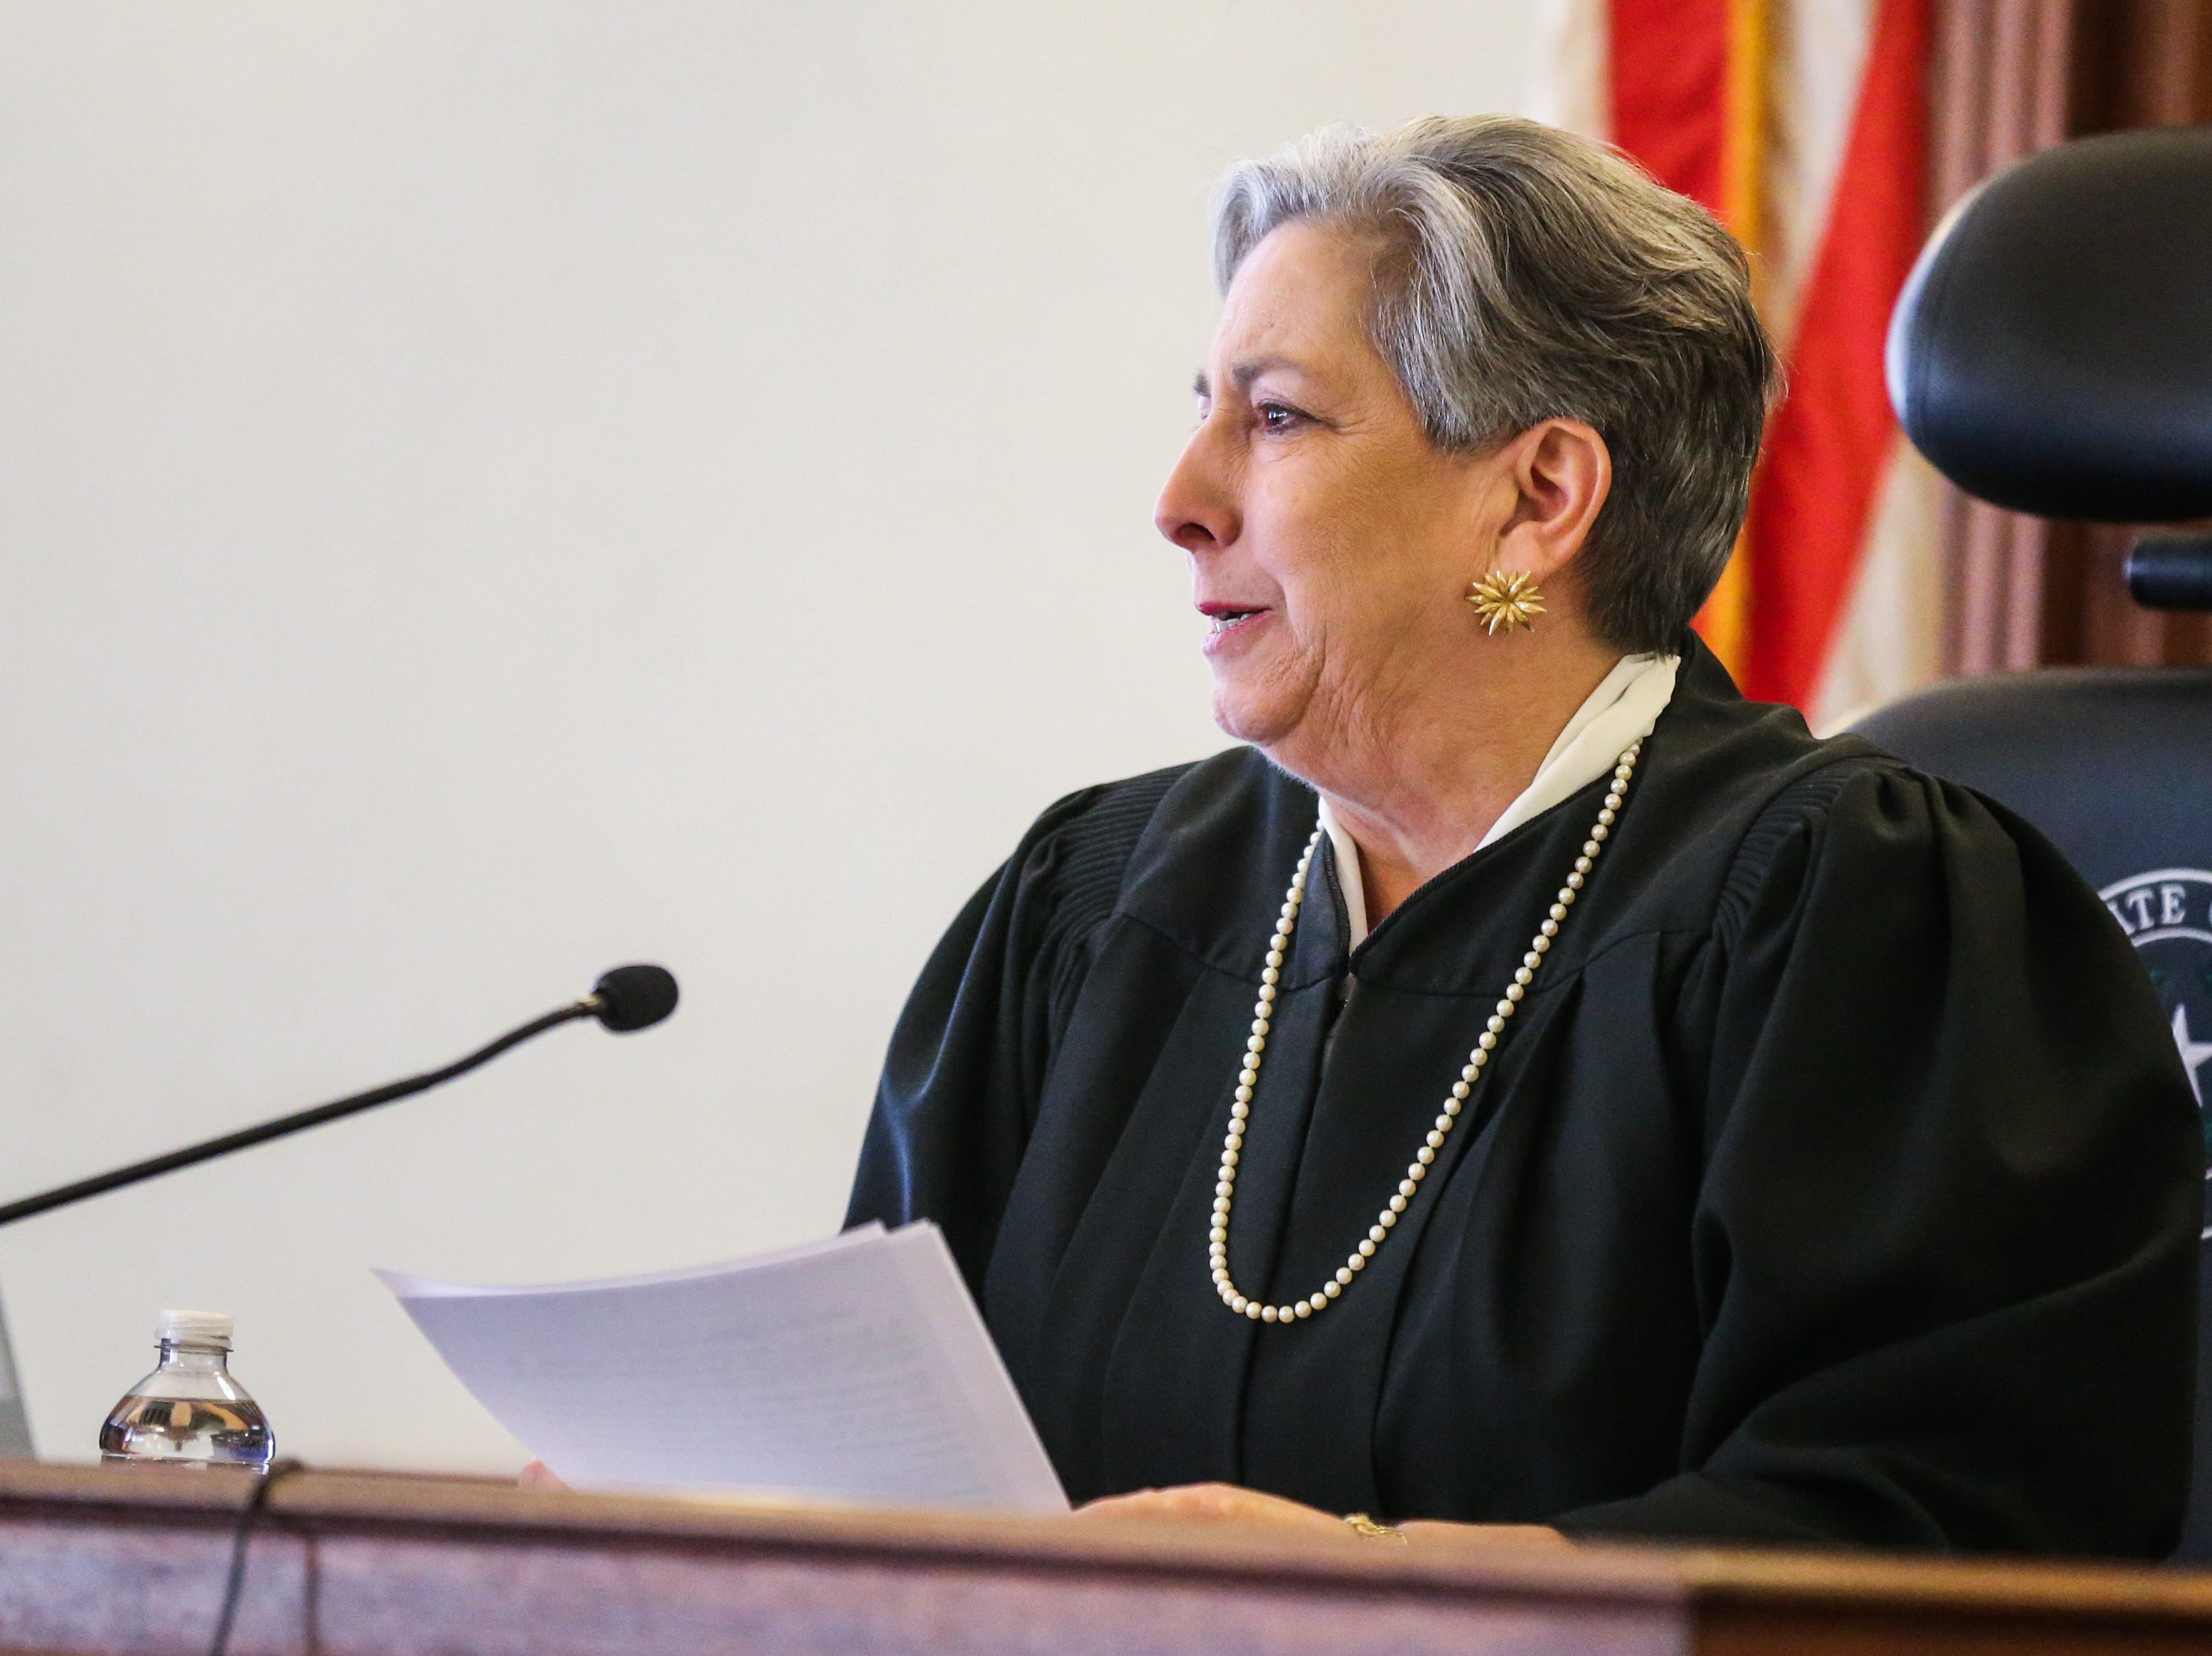 Justice Marilyn Aboussie talks about Carmen Dusek during the swearing in ceremony Friday, Dec. 14, 2018, at Tom Green Courthouse.